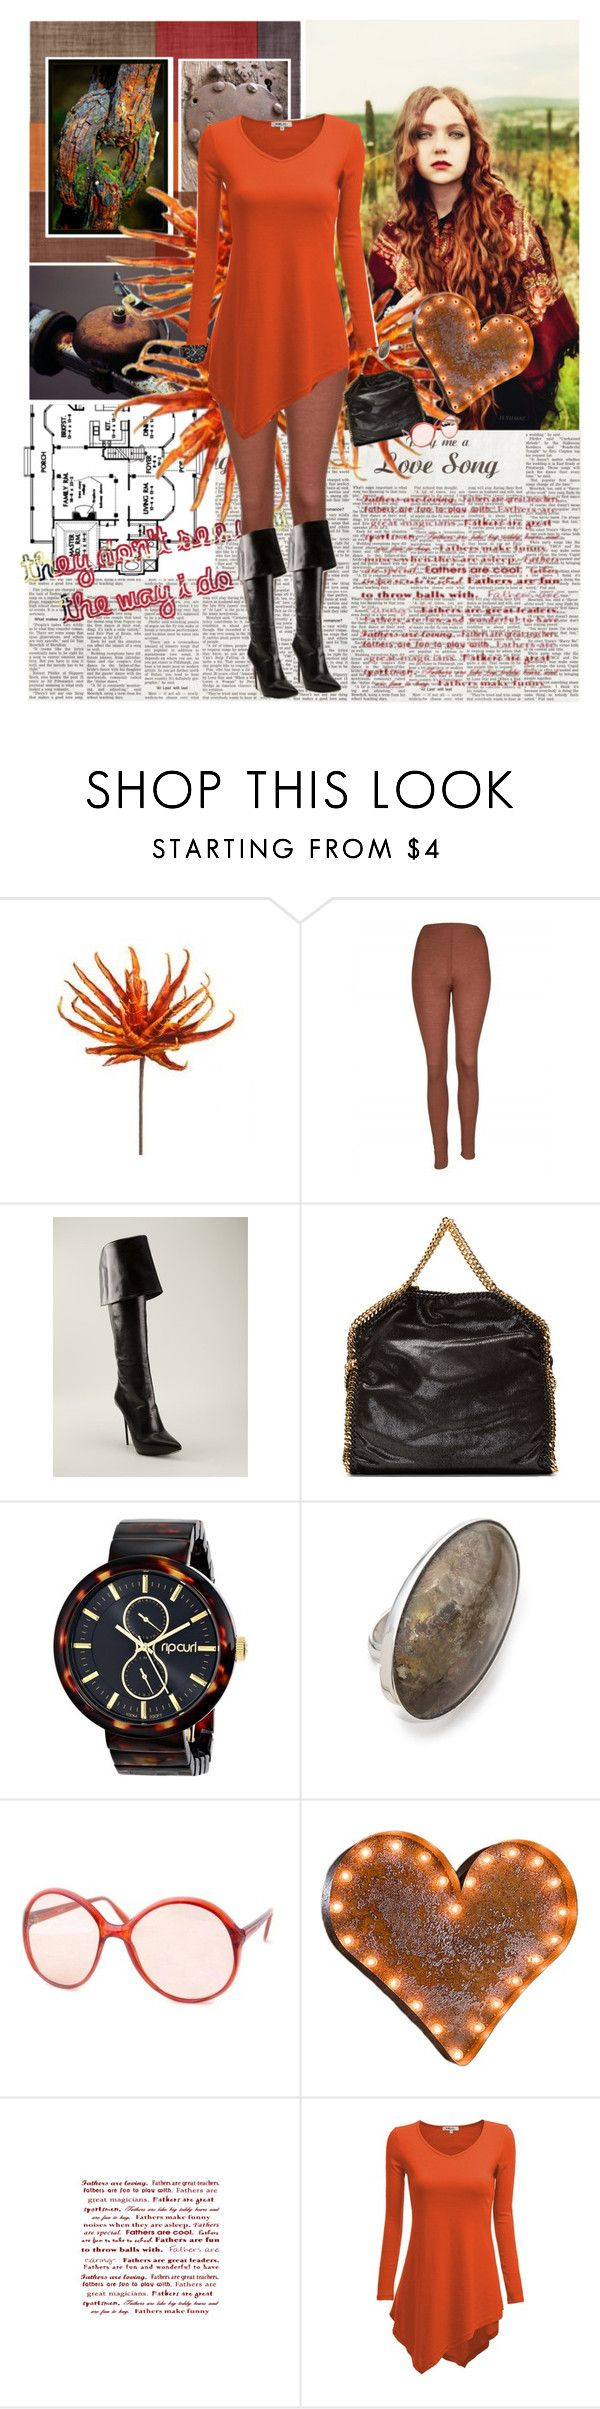 """Rusty Heart"" by valc5 ❤ liked on Polyvore featuring PlayMe Jeans, Gianmarco Lorenzi, STELLA McCARTNEY, Rip Curl, Maison Margiela, Smash Vintage, Vintage Marquee Lights and Doublju"